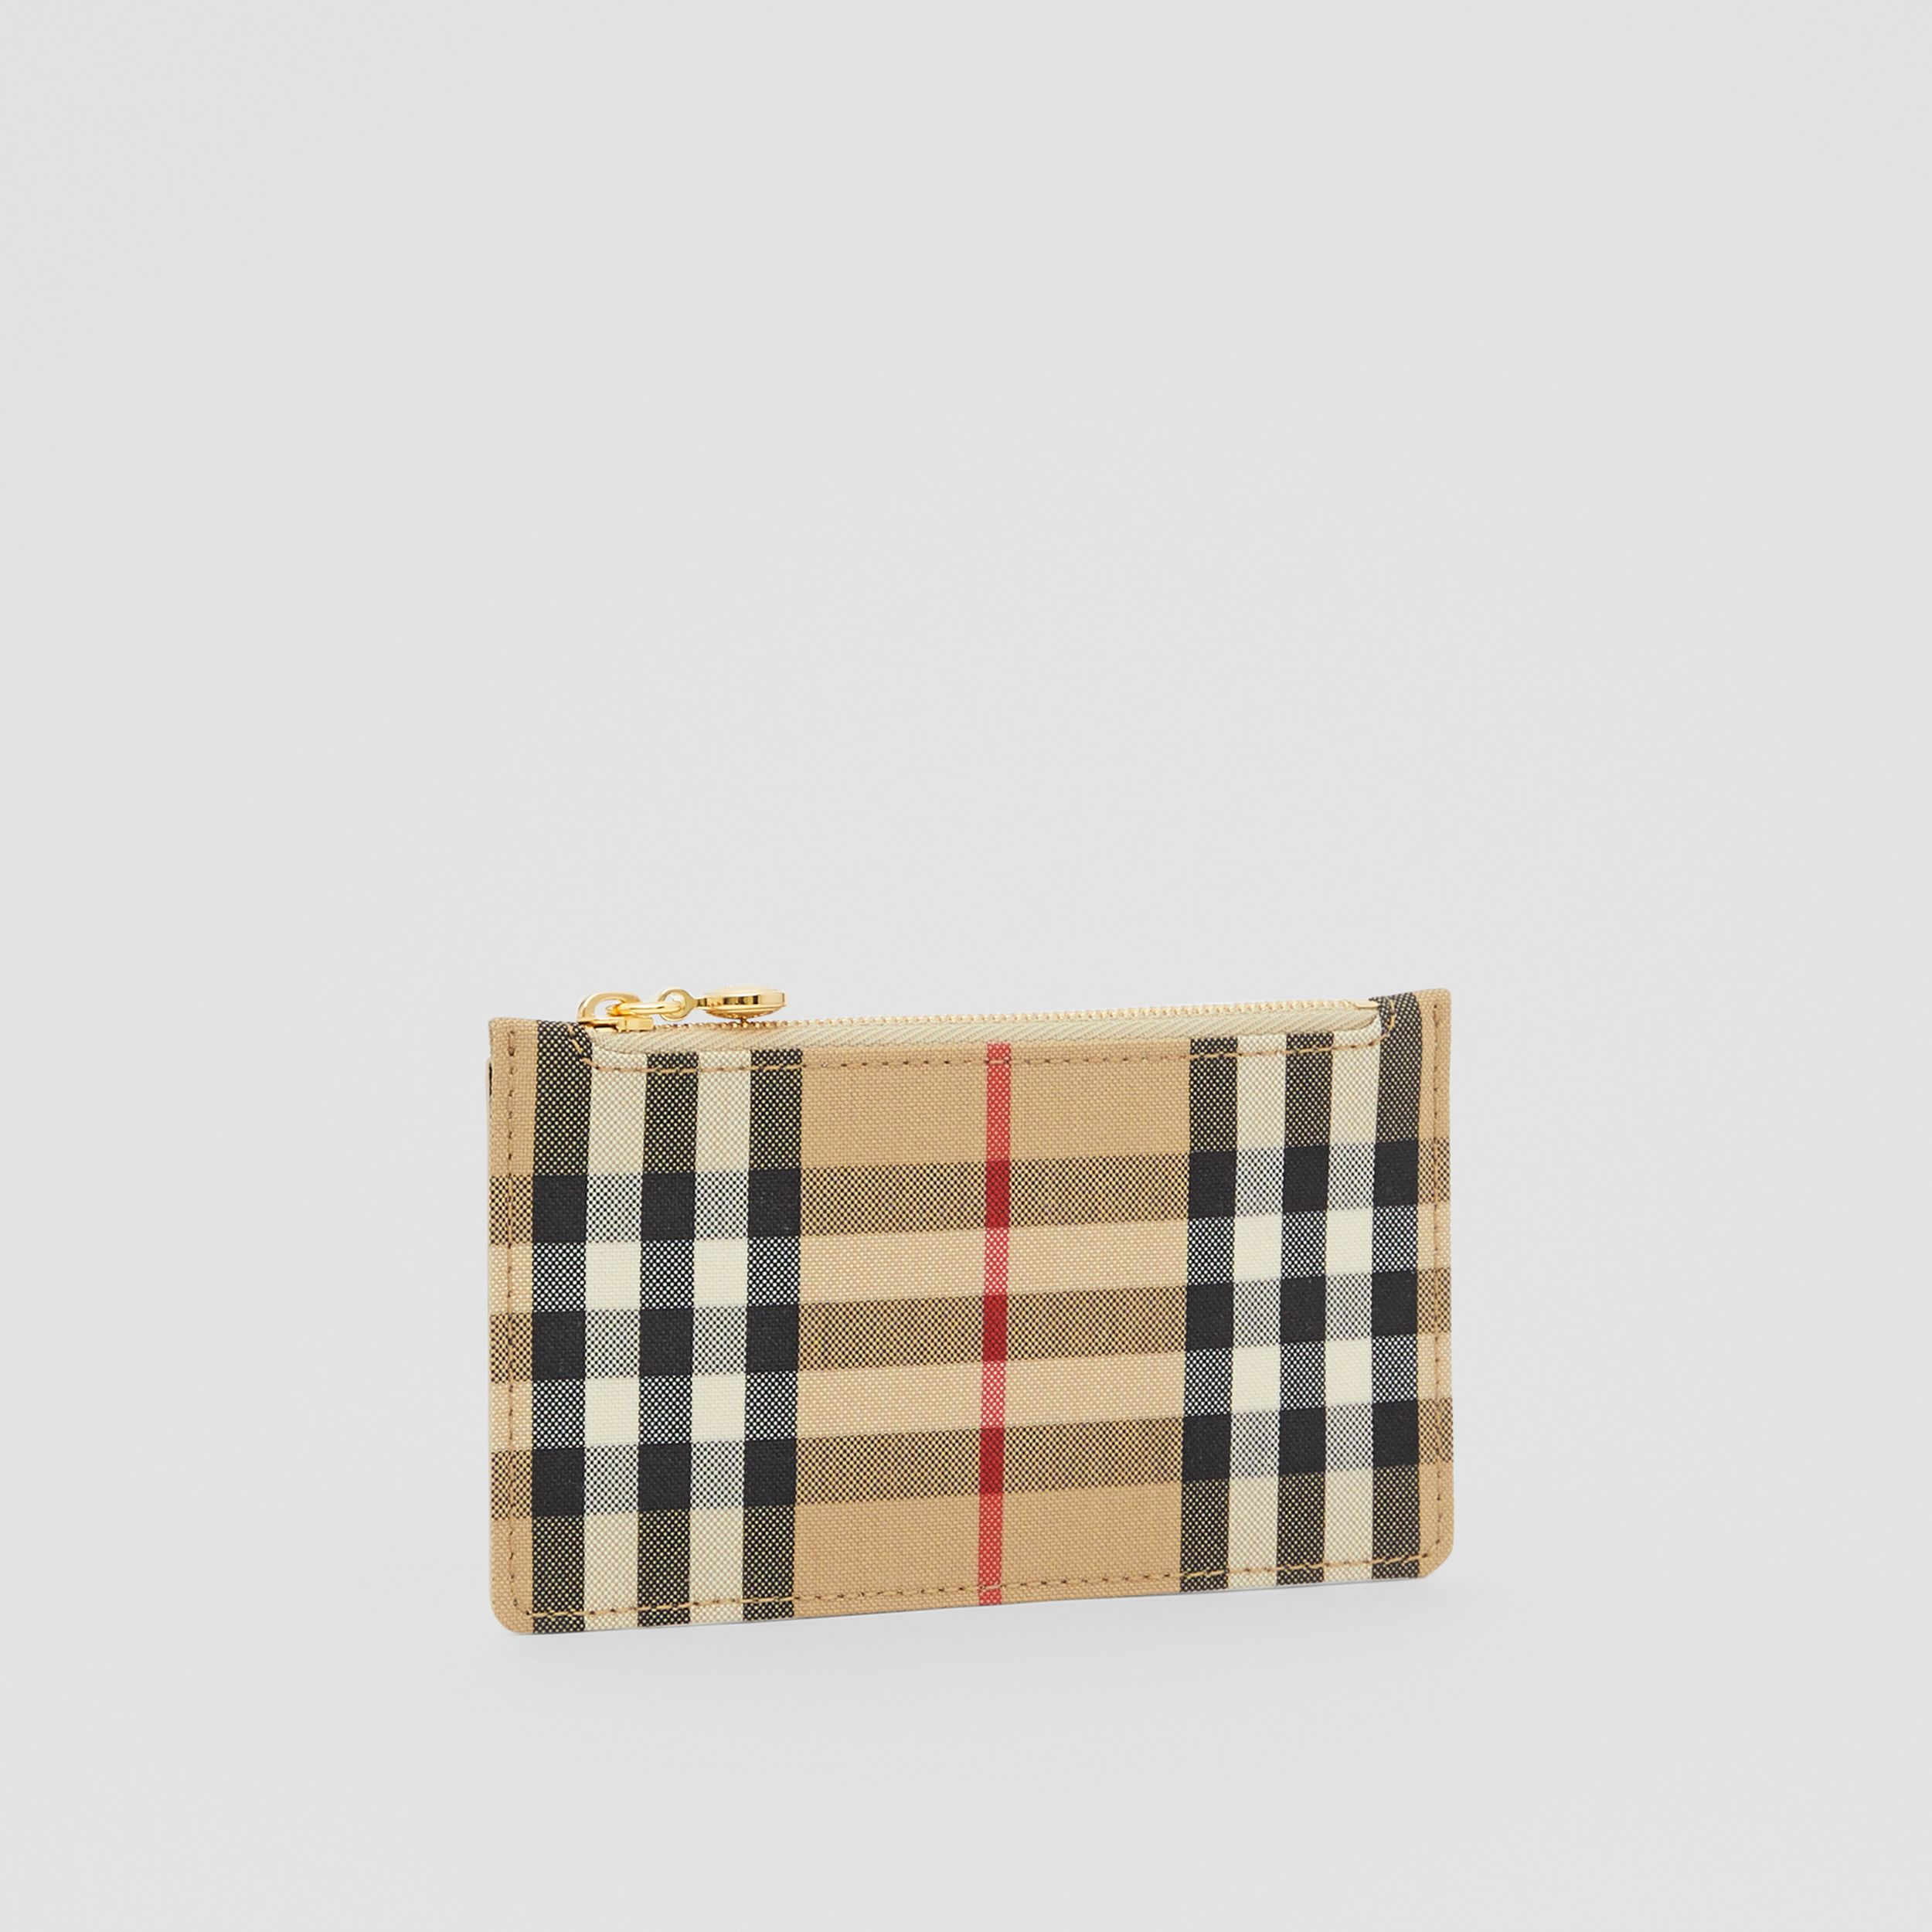 Vintage Check and Leather Zip Card Case in Light Beige - Women | Burberry - 4